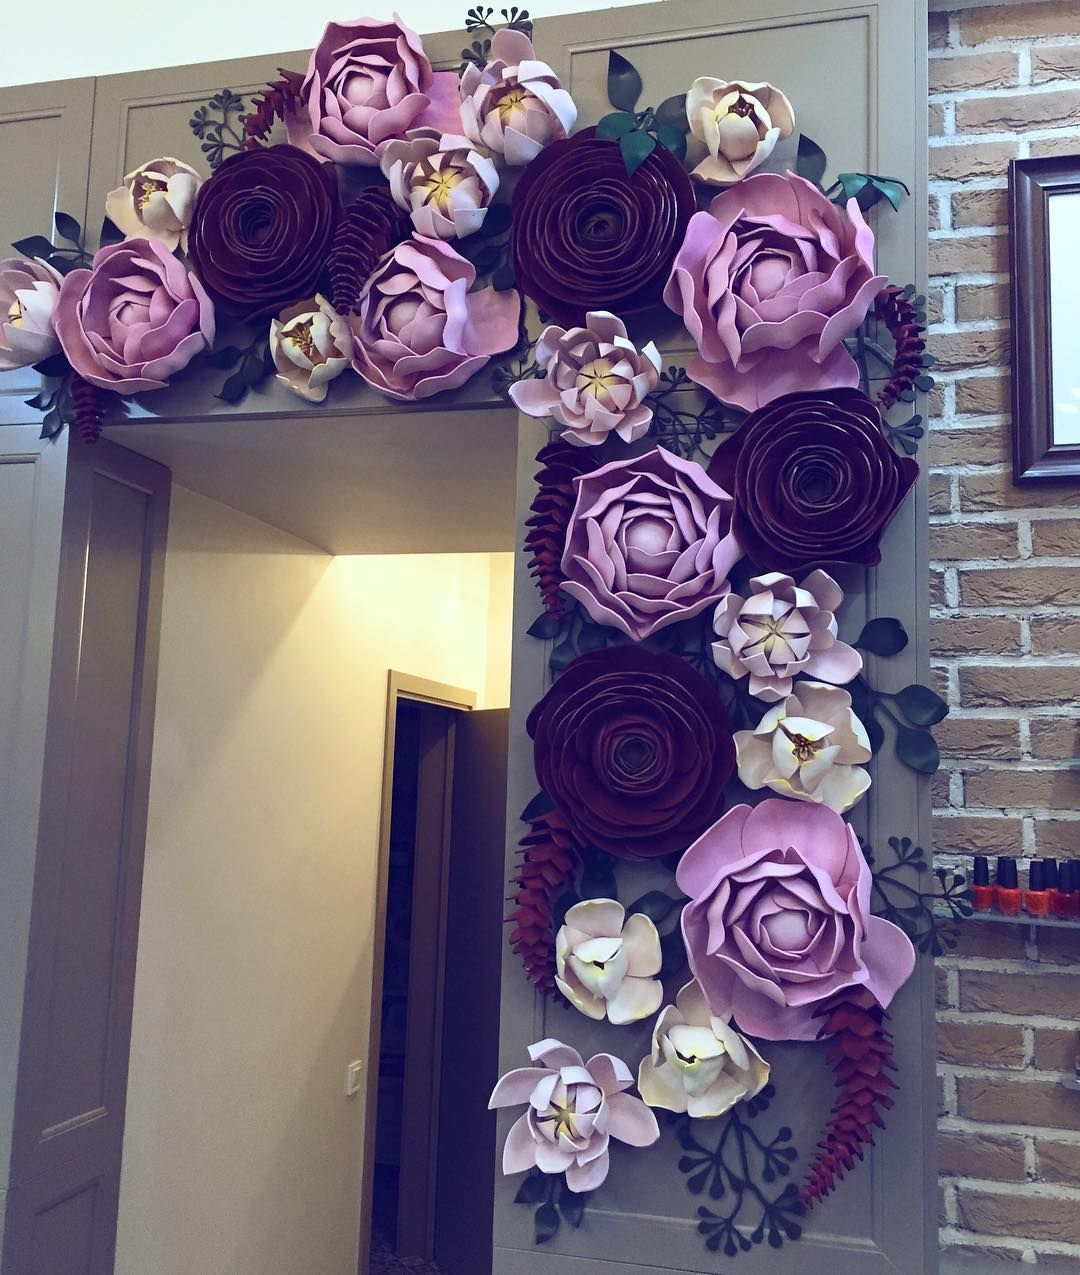 Pin by My Info on decor  Pinterest  Flowers Backdrops and Craft